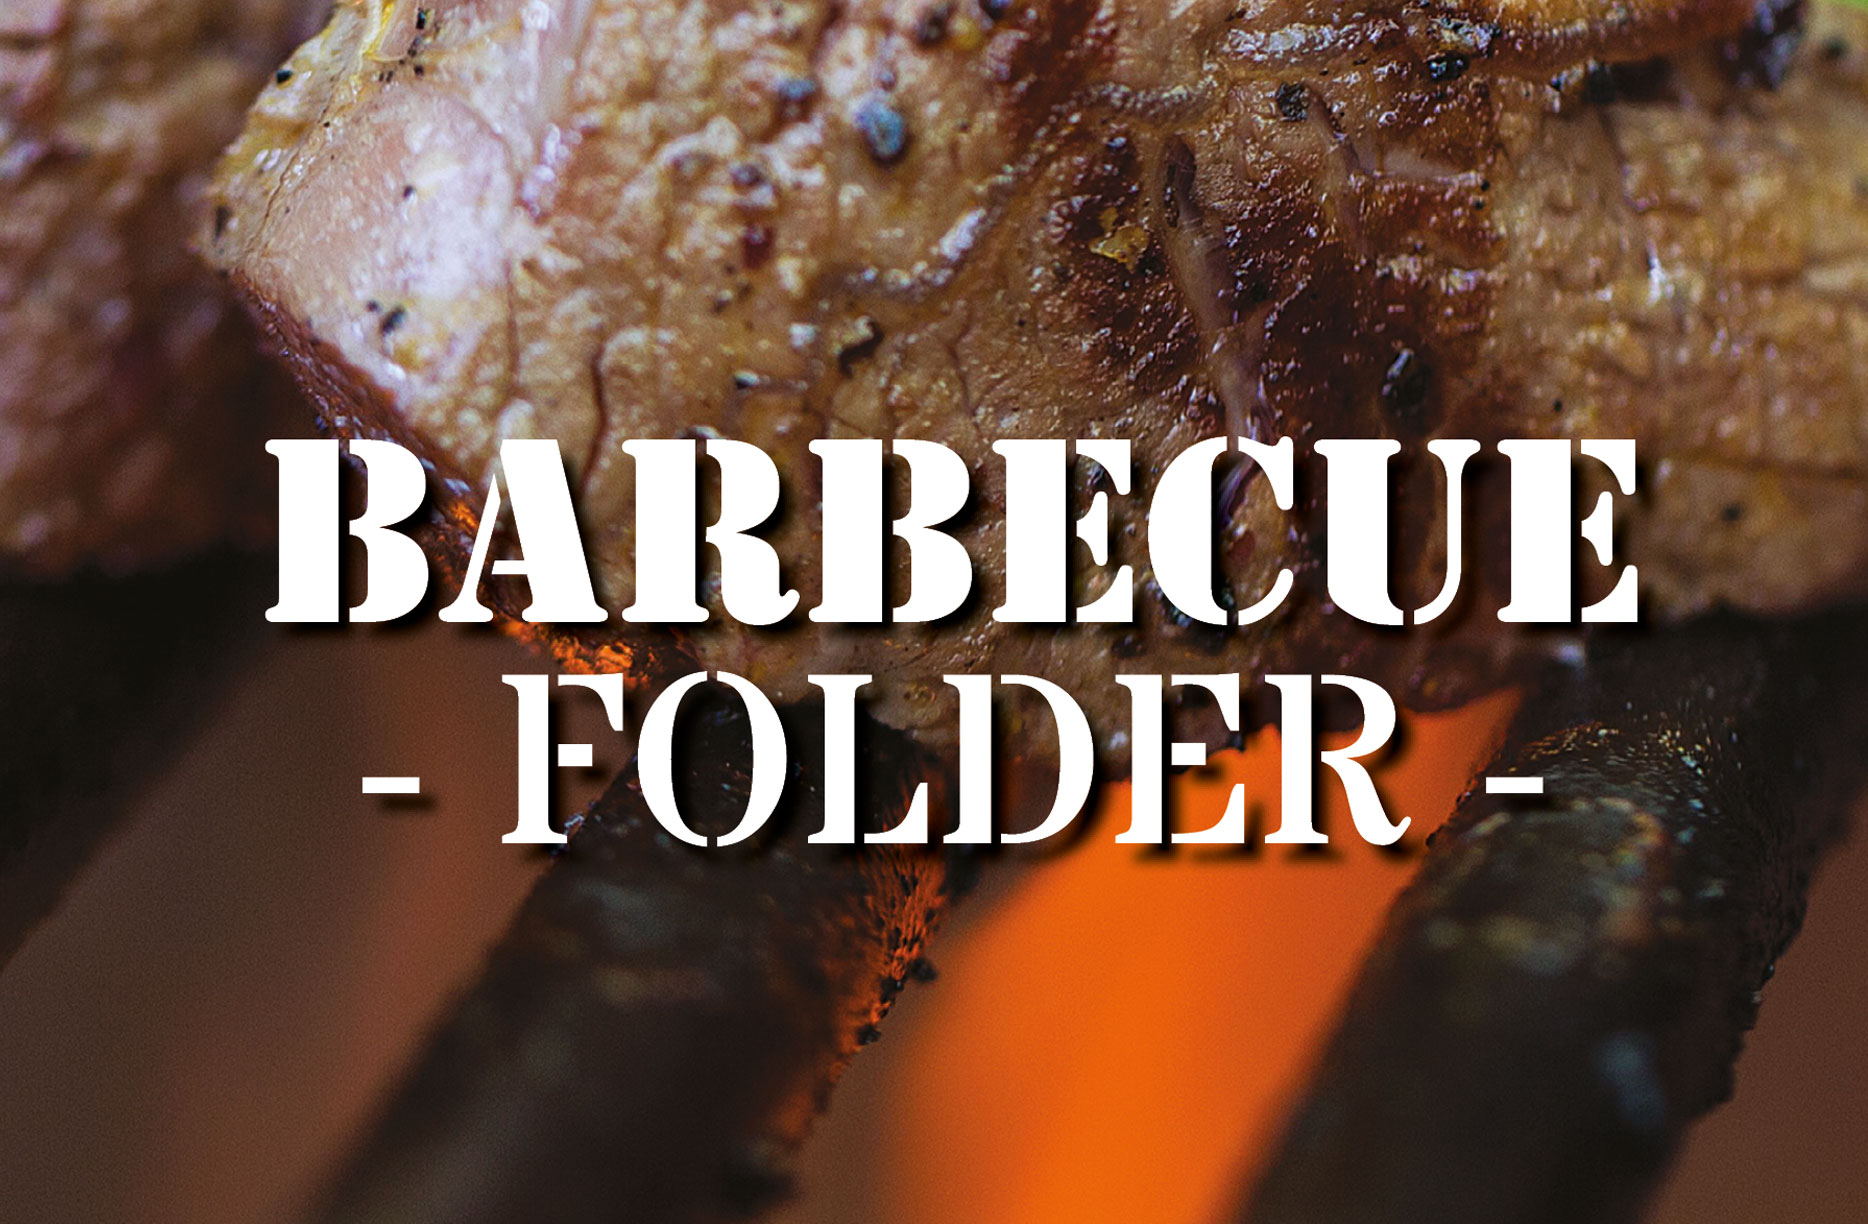 bbq-folder traiteur vandermeulen